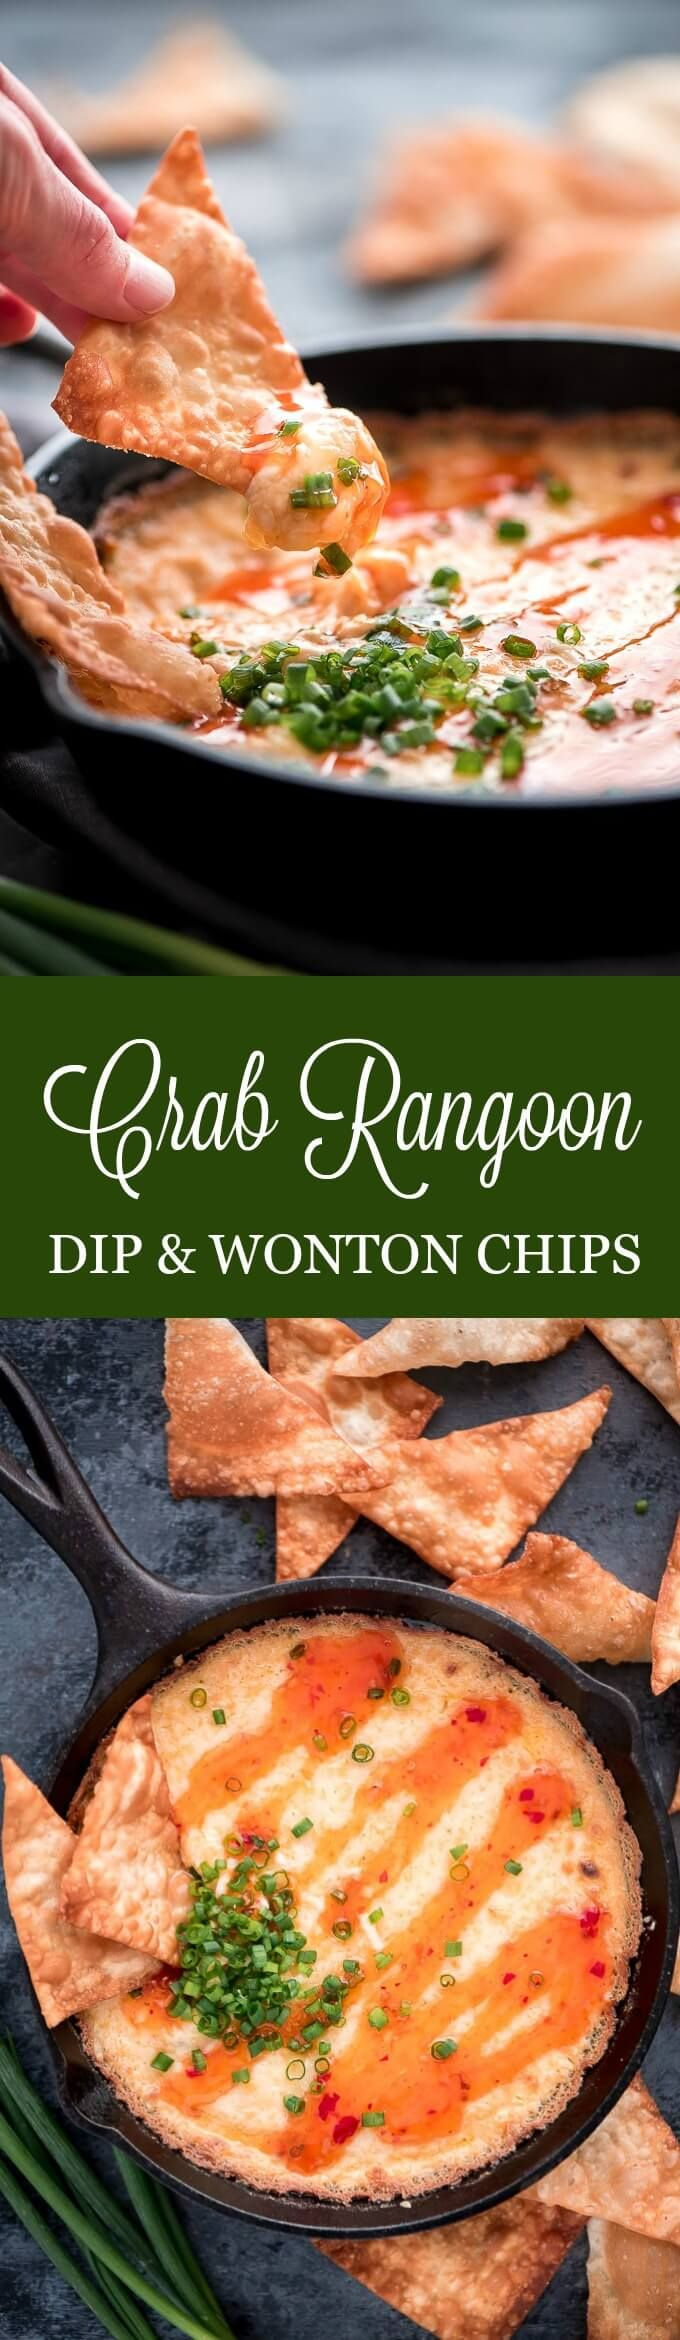 This crowd pleasing Crab Rangoon Dip and Wonton Chips has all the elements of yourfavorite American Chinese appetizer but is much easier to make. #appetizer #cheesy #gamedayfood